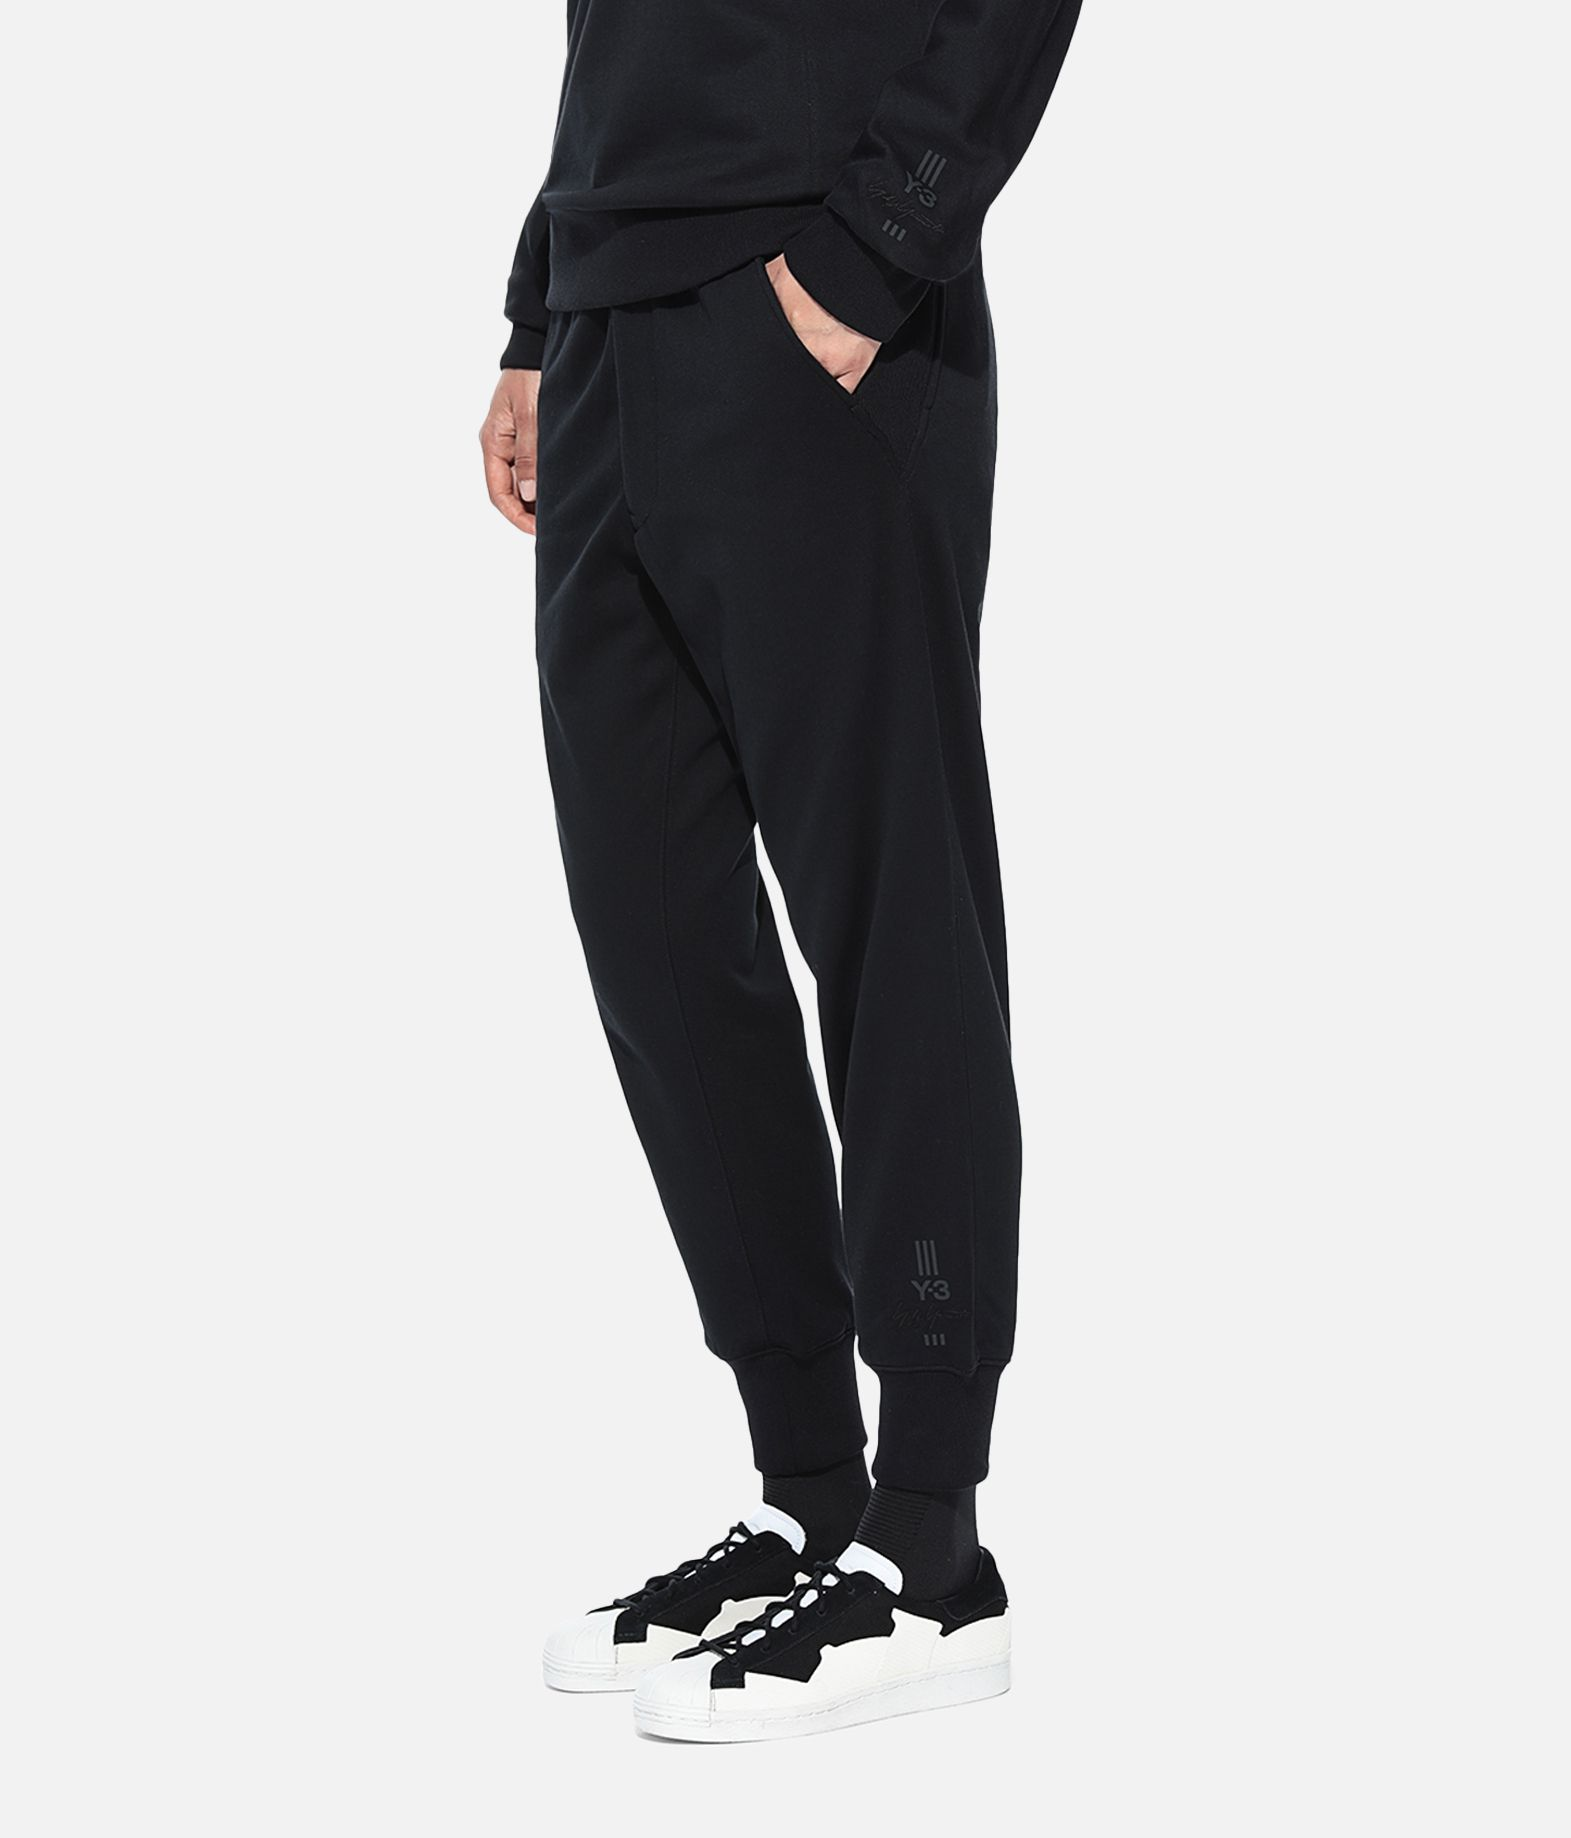 Y-3 Y-3 Classic Cuffed Pants Sweatpants Woman e